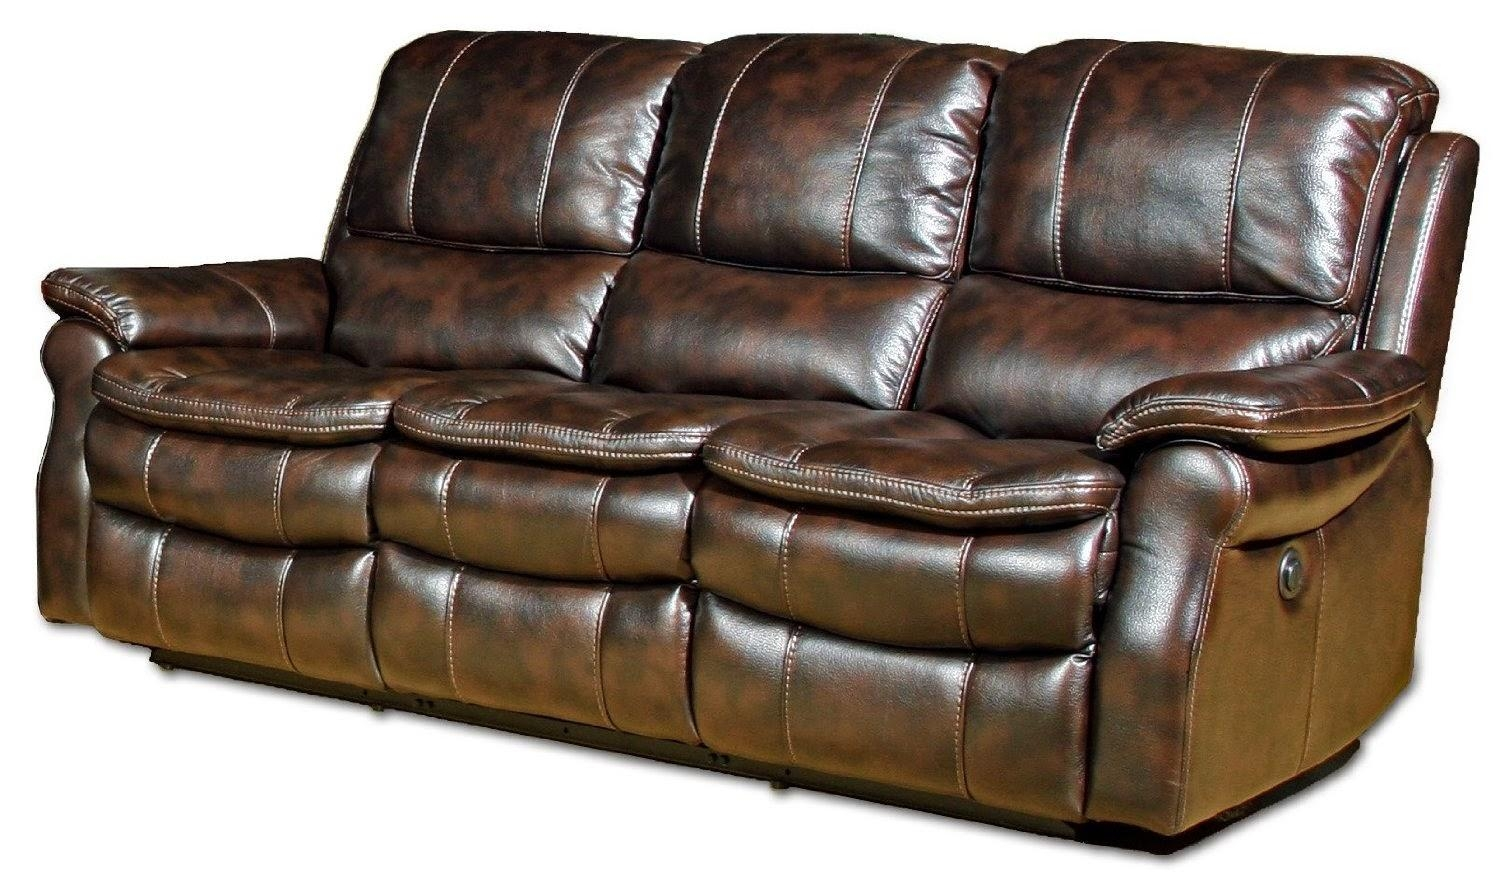 Sofas Center : Leather Recliner Sofa Seater Sale Stupendous Intended For Berkline Leather Recliner Sofas (Image 17 of 20)